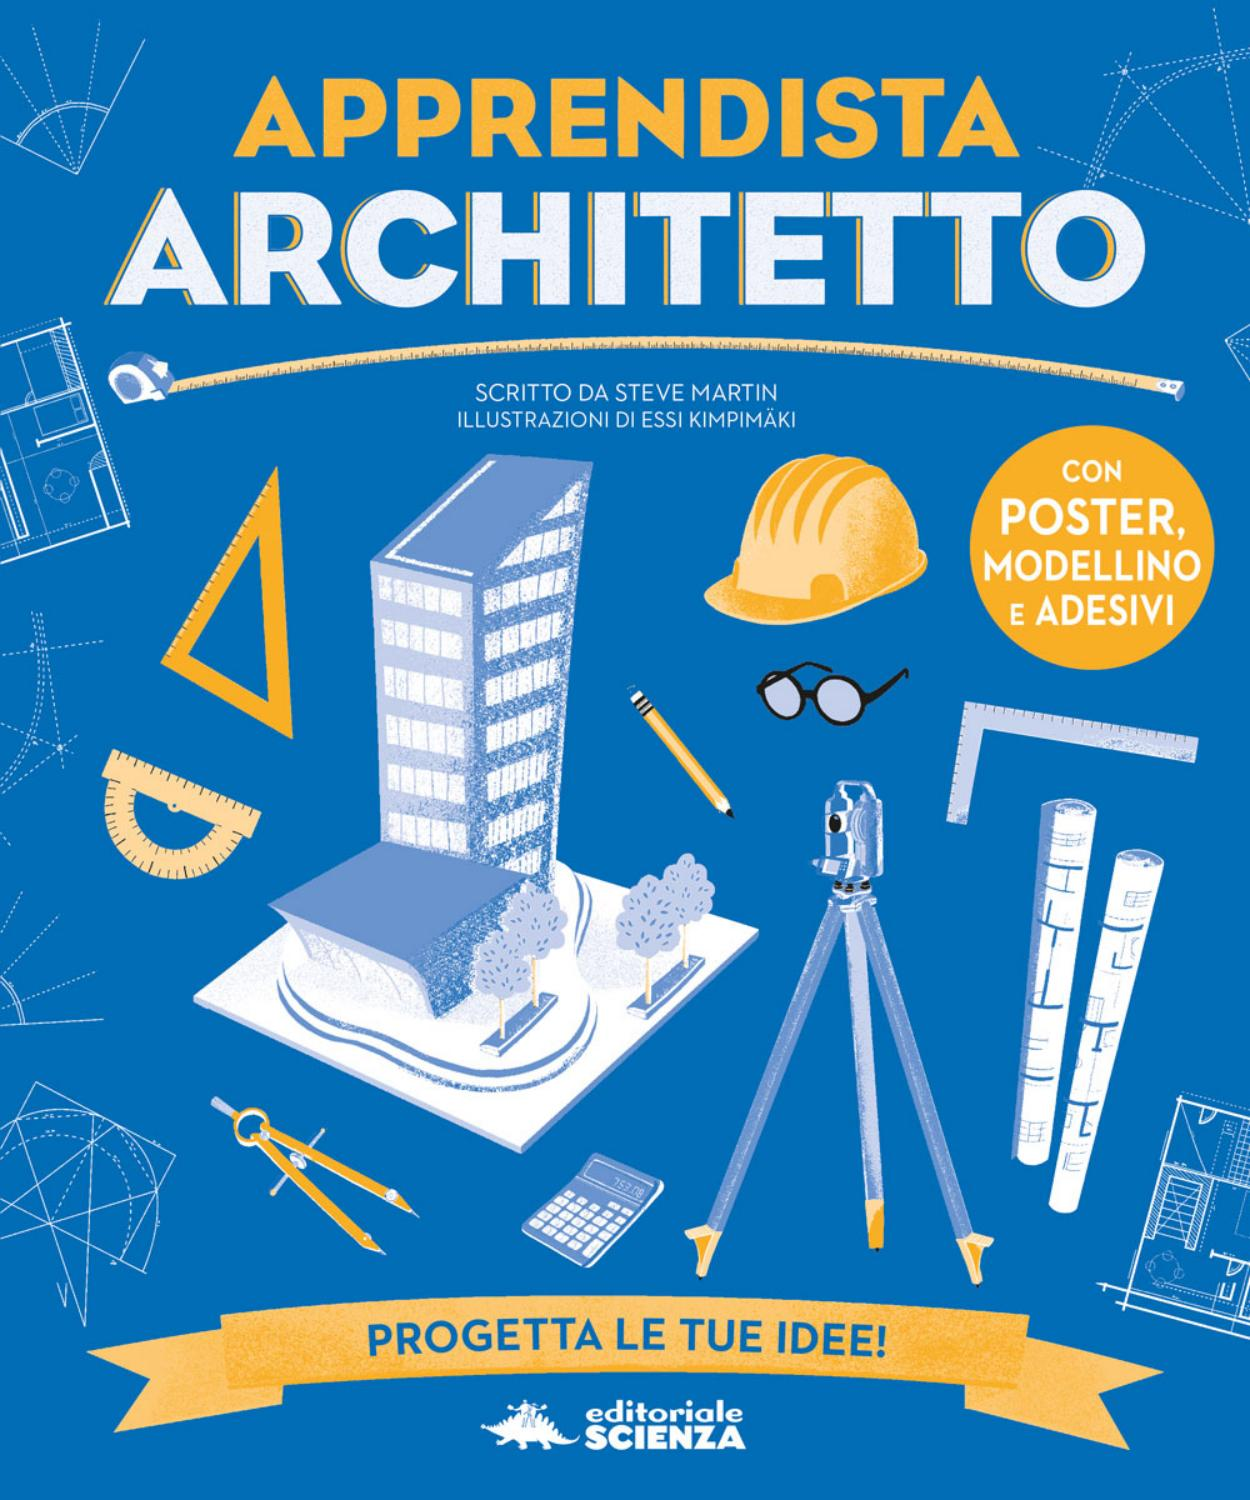 Apprendista architetto by editoriale scienza issuu for Architetto per interni